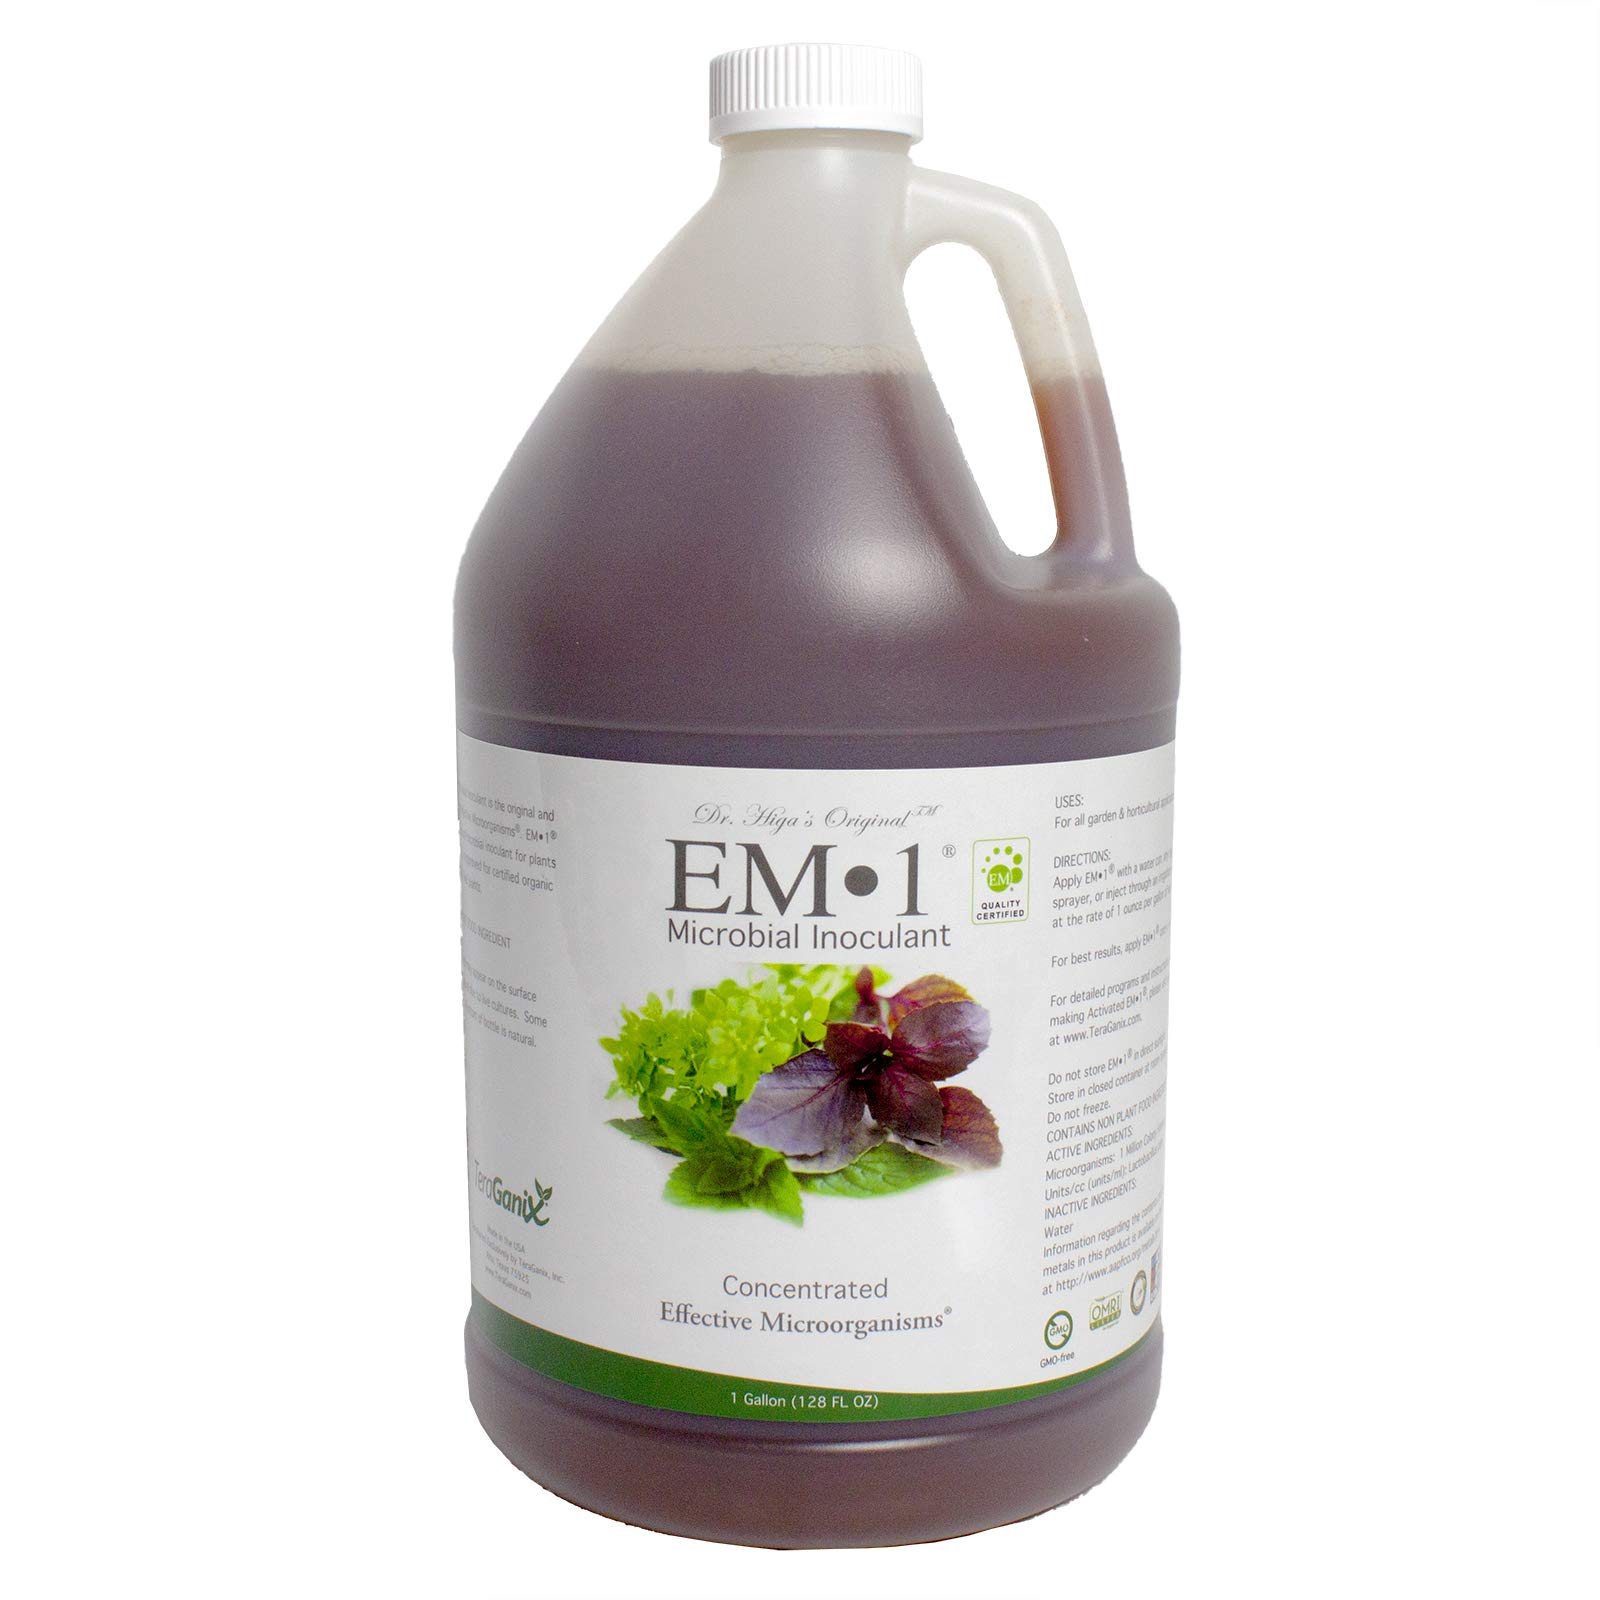 TeraGanix EM-1 (1 Gal.) - Certified Organic Microbial Inoculant - Plants and Soil Nontoxic Active Probiotic Conditioner For Lawn Care Eliminate Foul Odors and Improve Water Quality